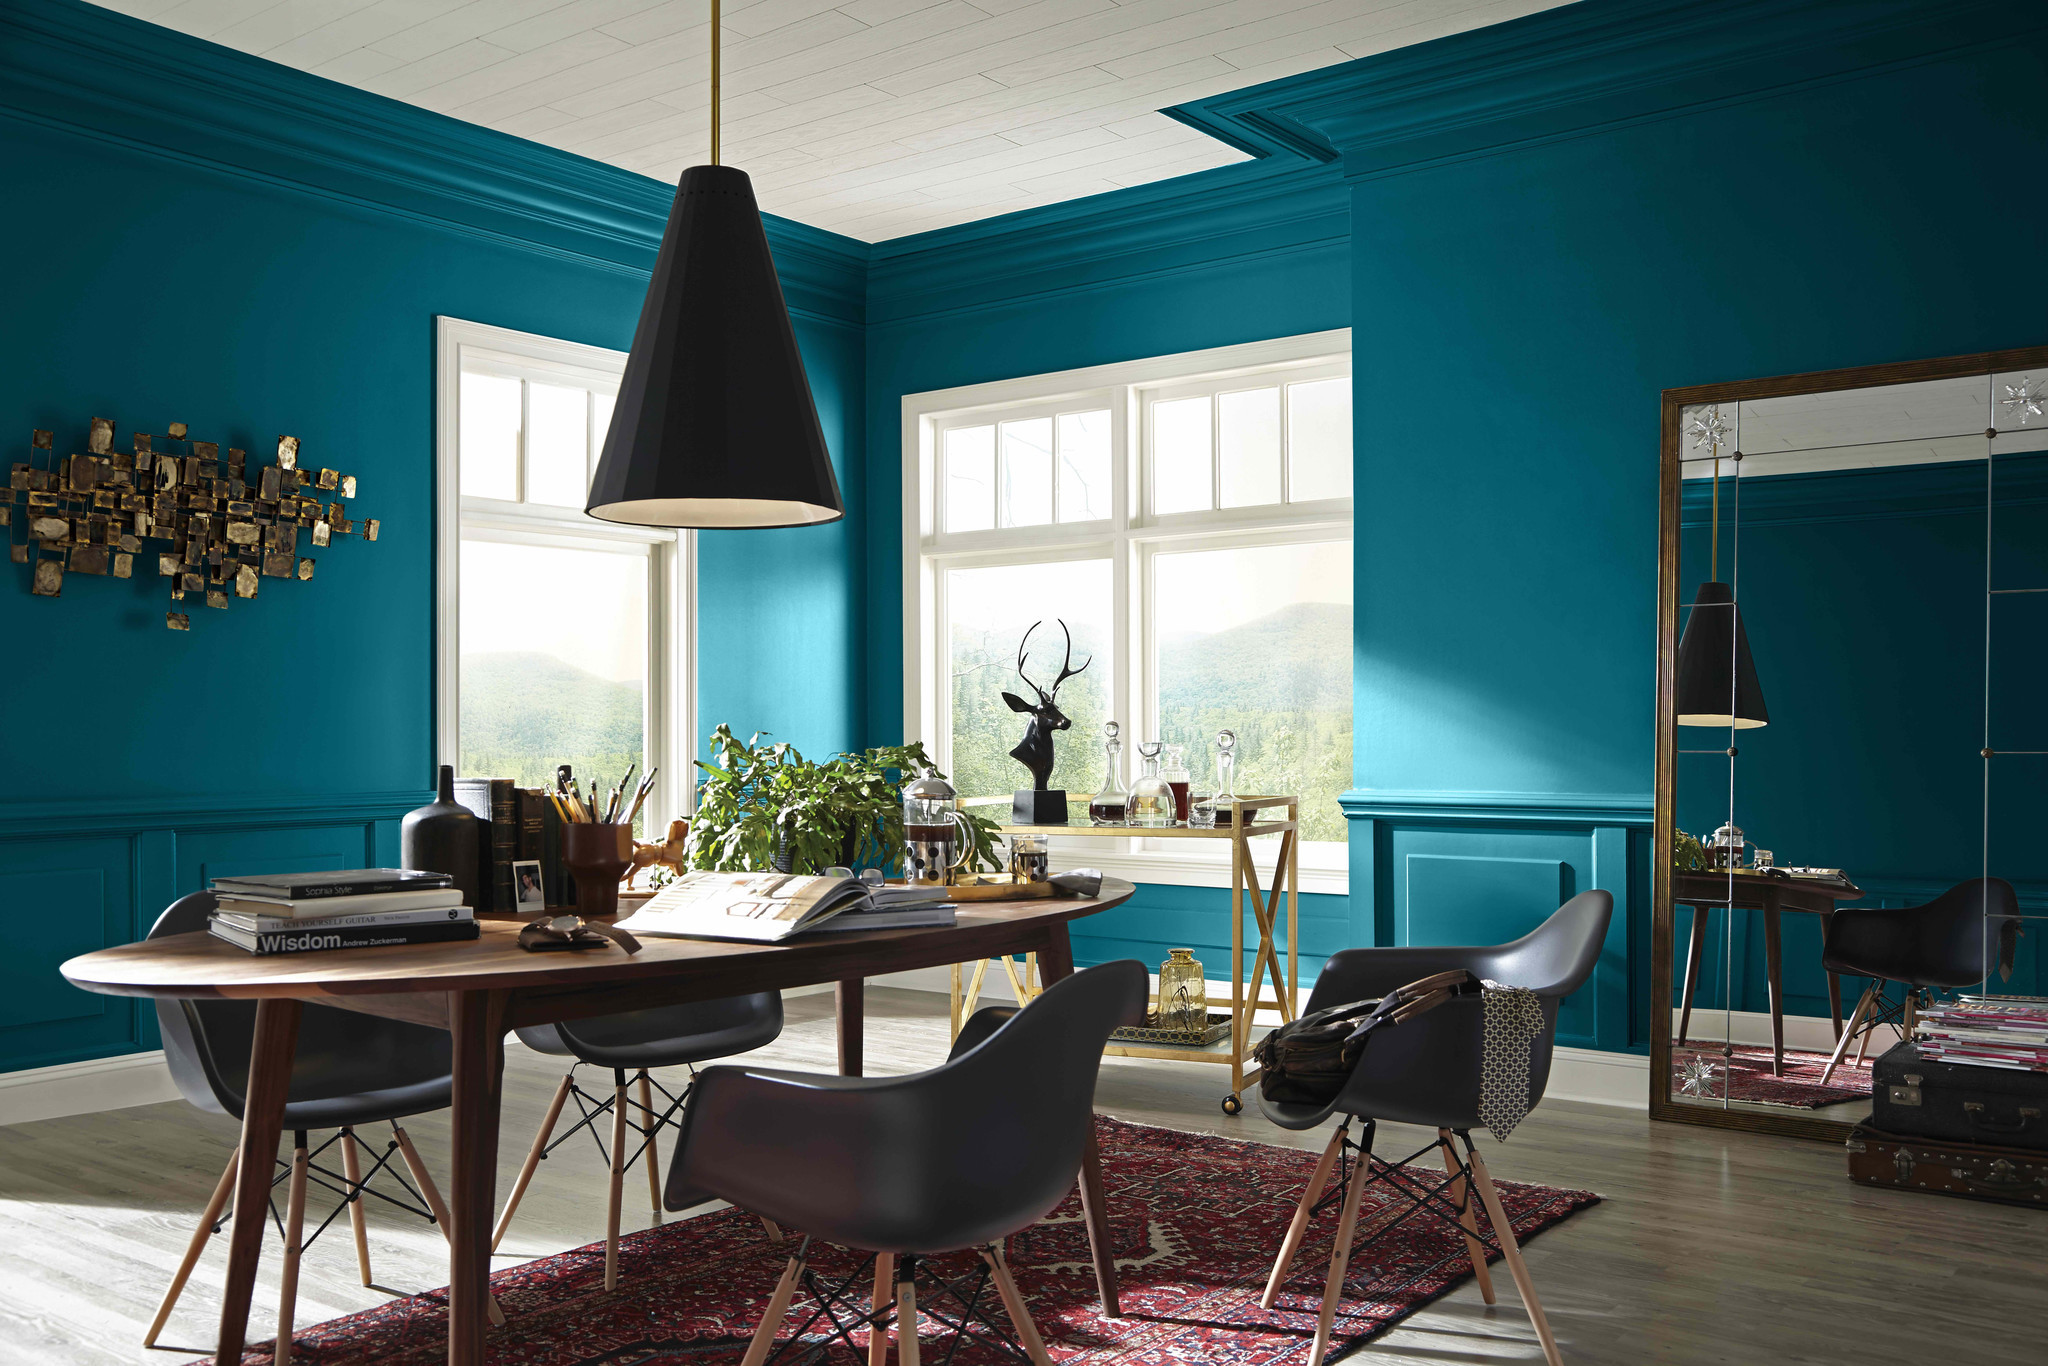 Sherwin-Williams Color of the Year 2018: Oceanside